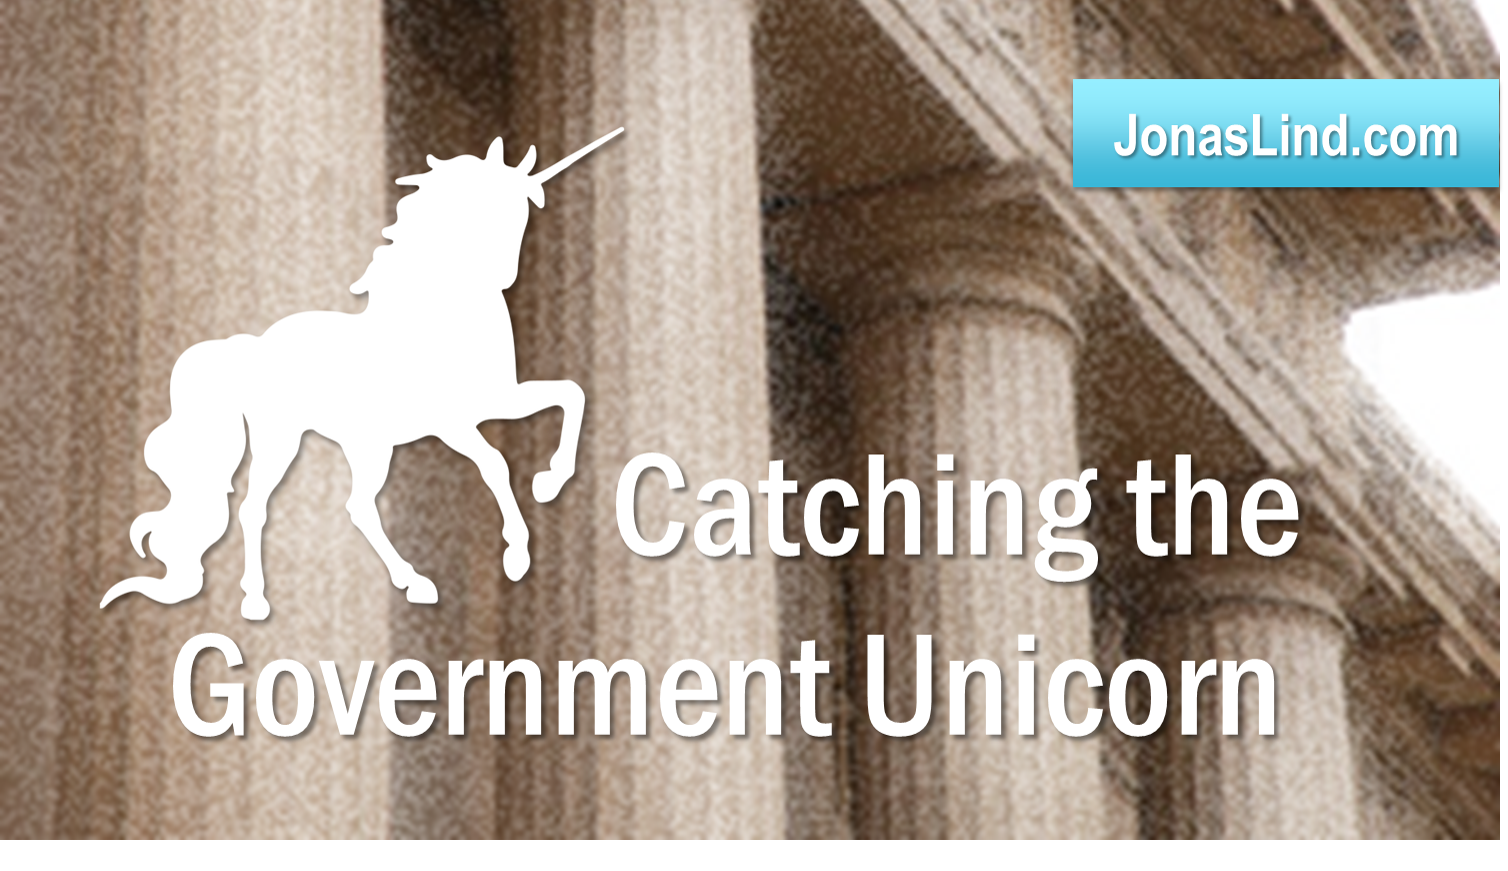 Catching the Government Unicorn